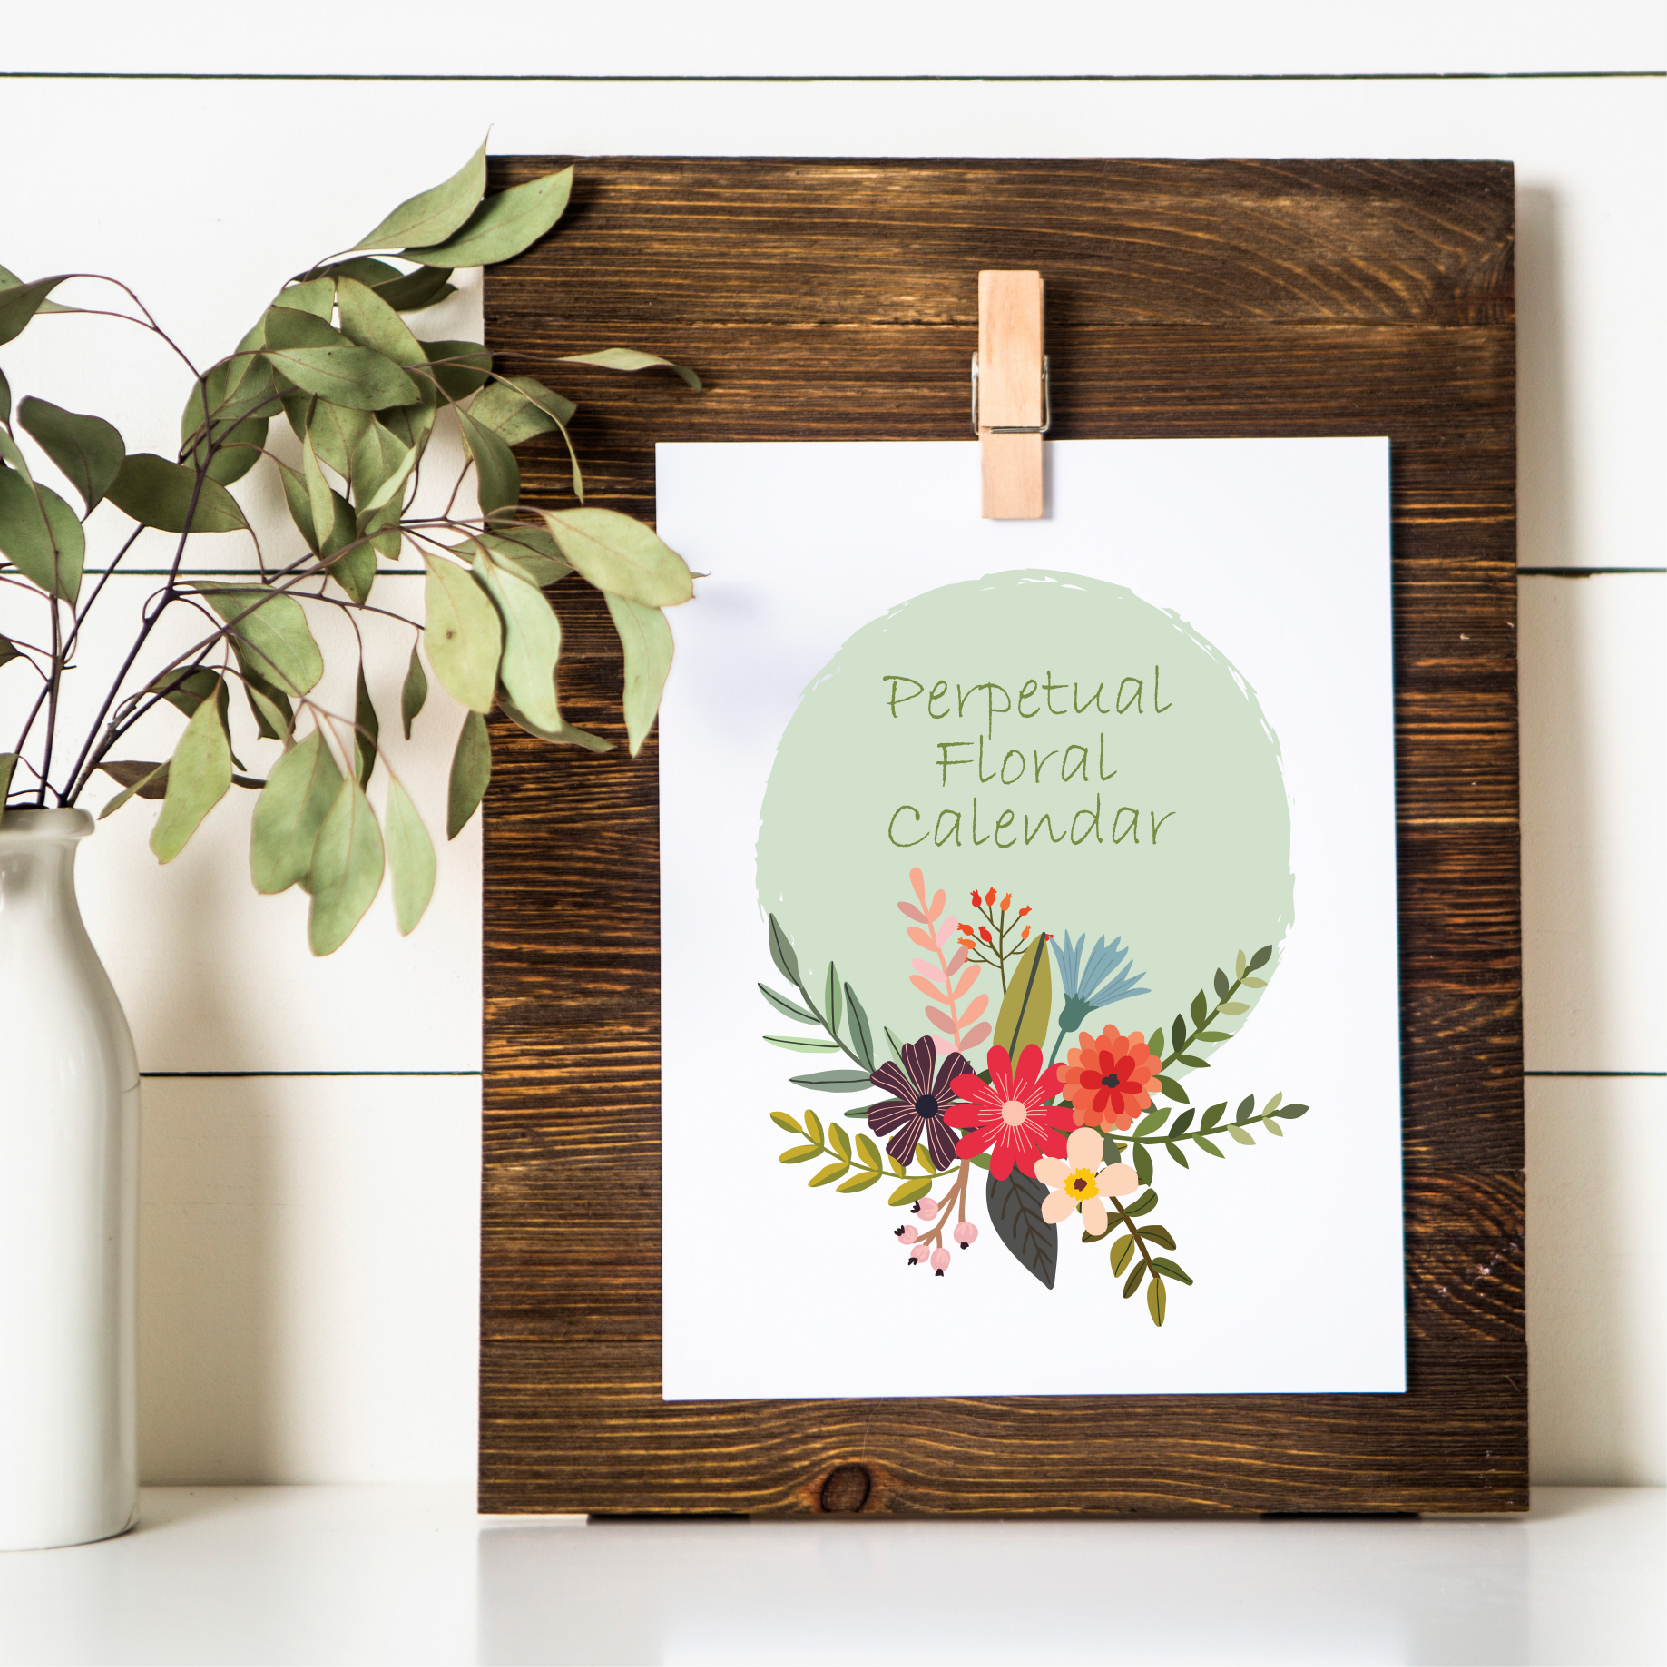 Creating to the Glory of God. Plus a free printable perpetual calendar!